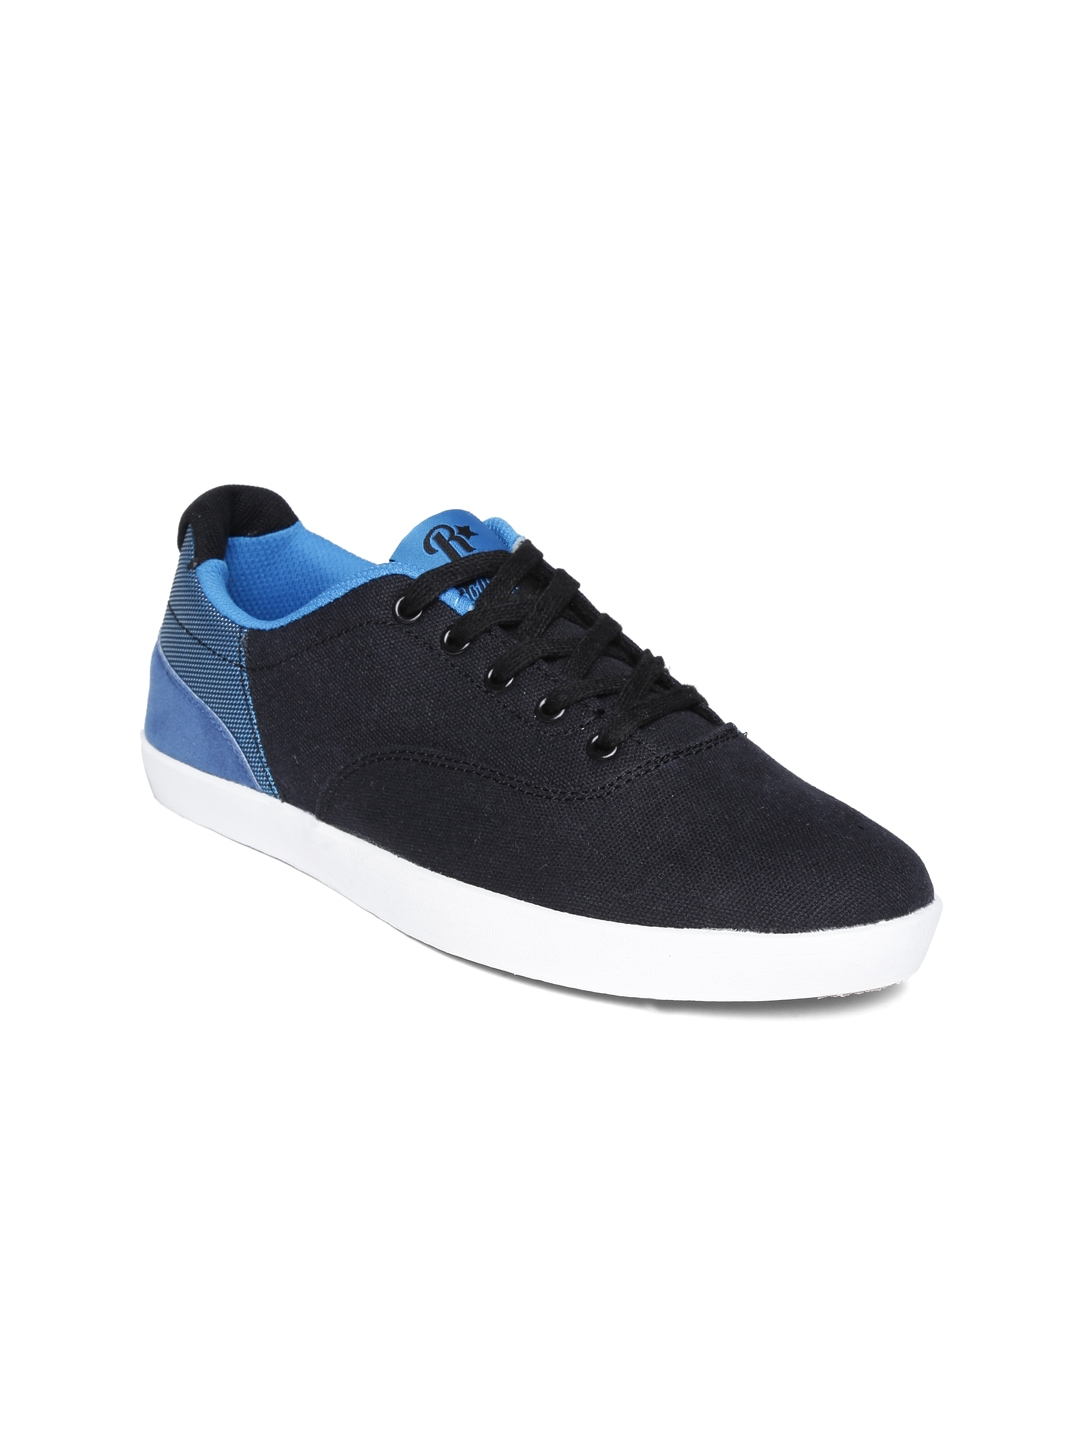 myntra roadster black casual shoes 652738 buy myntra